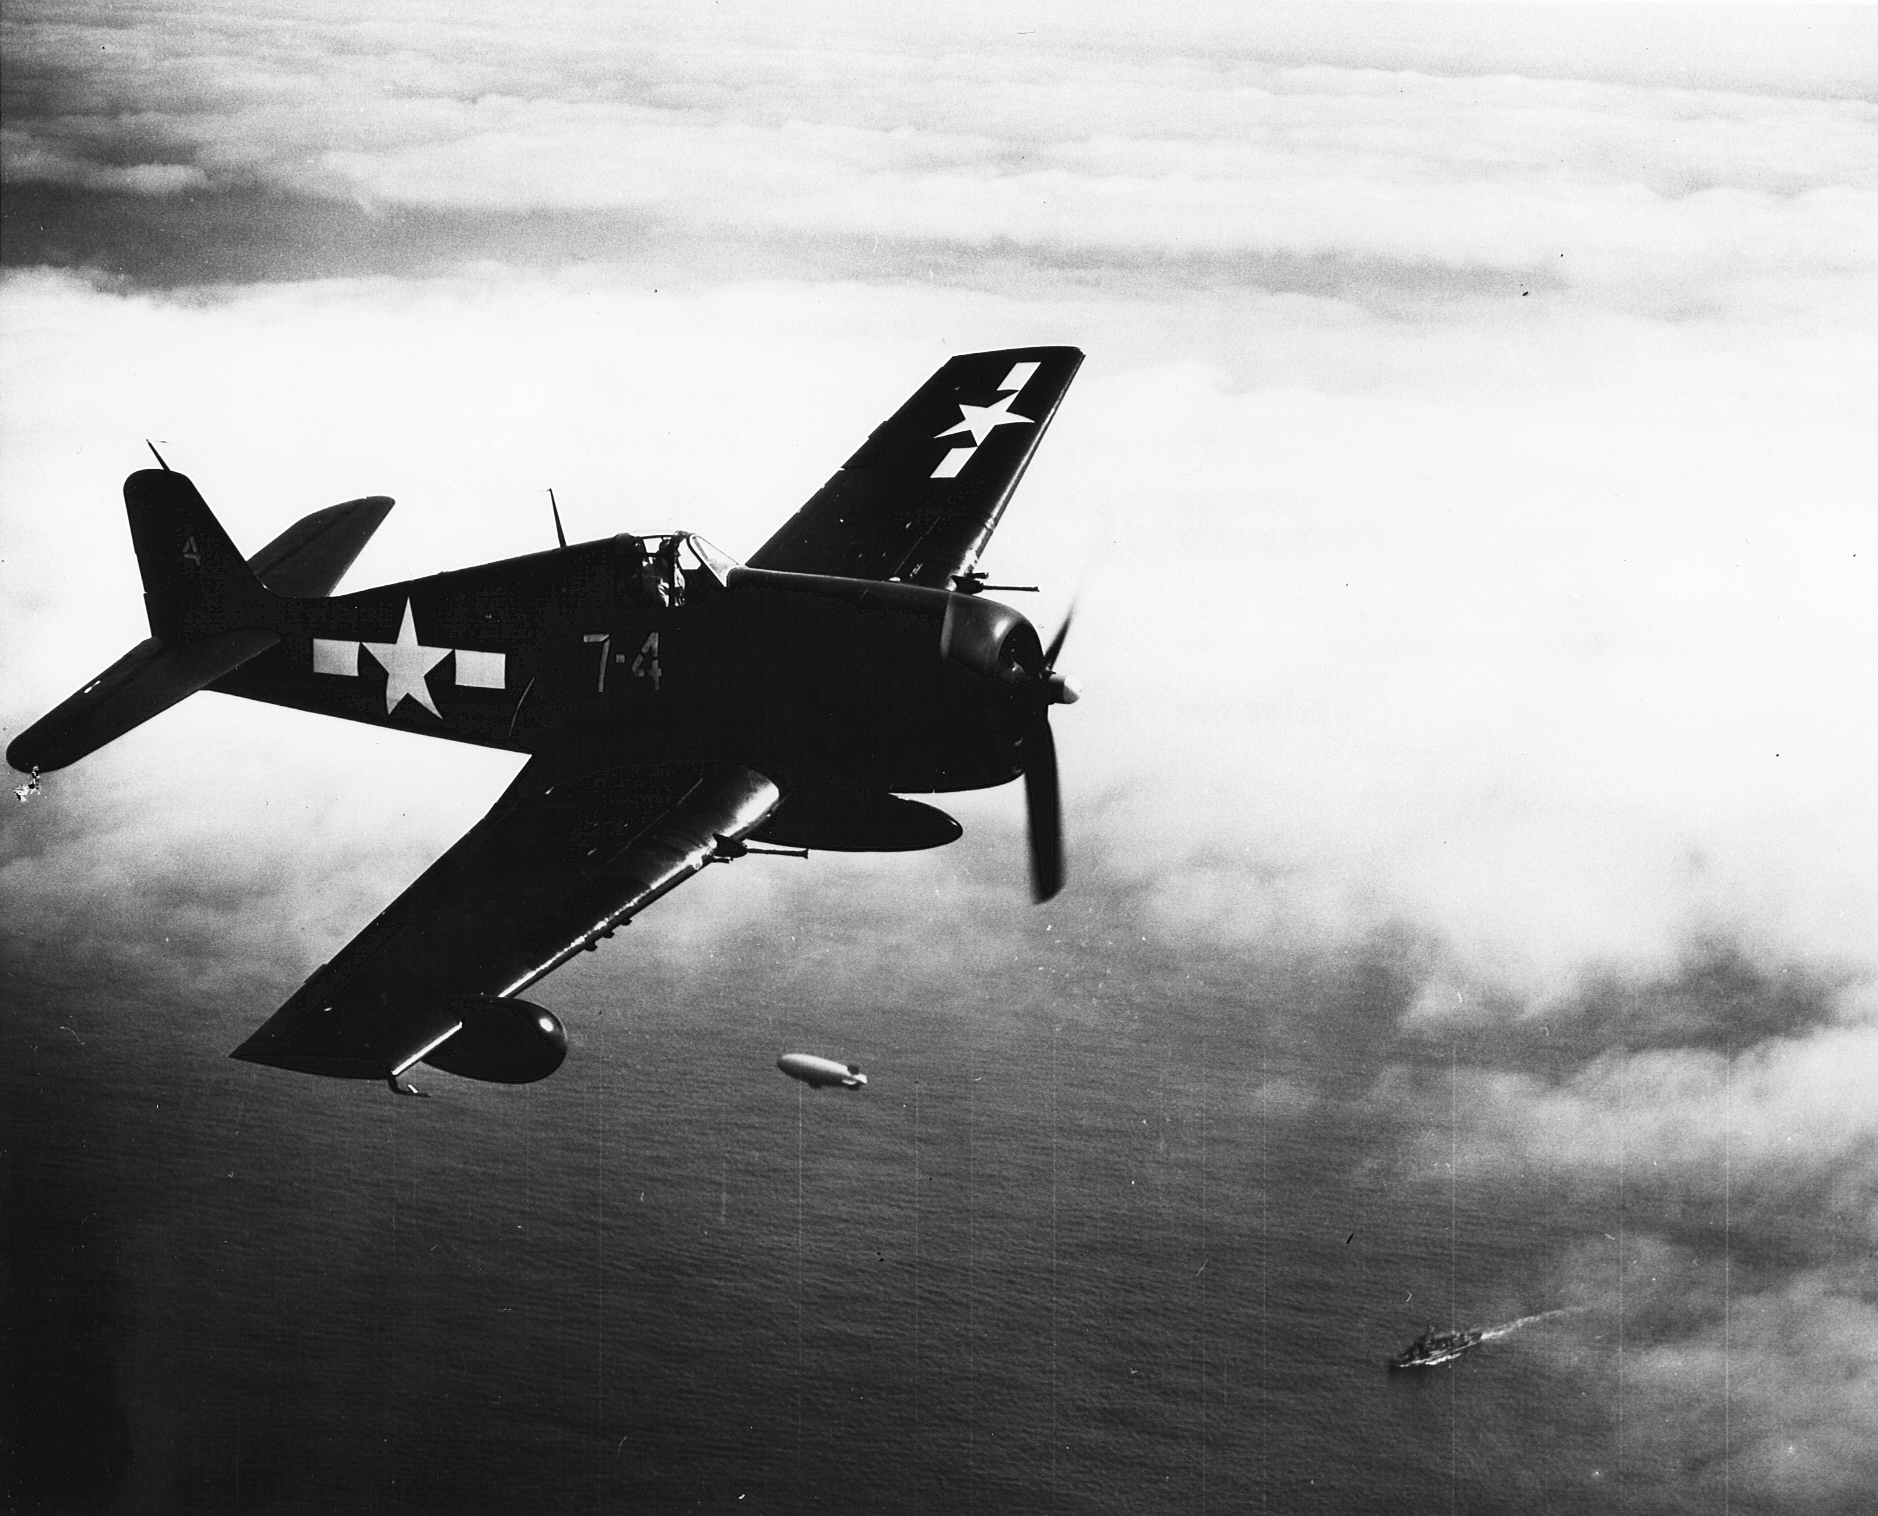 Grumman F6F 5N Hellcat VFN 107 White 74 from NAS Quonset Point RI 01